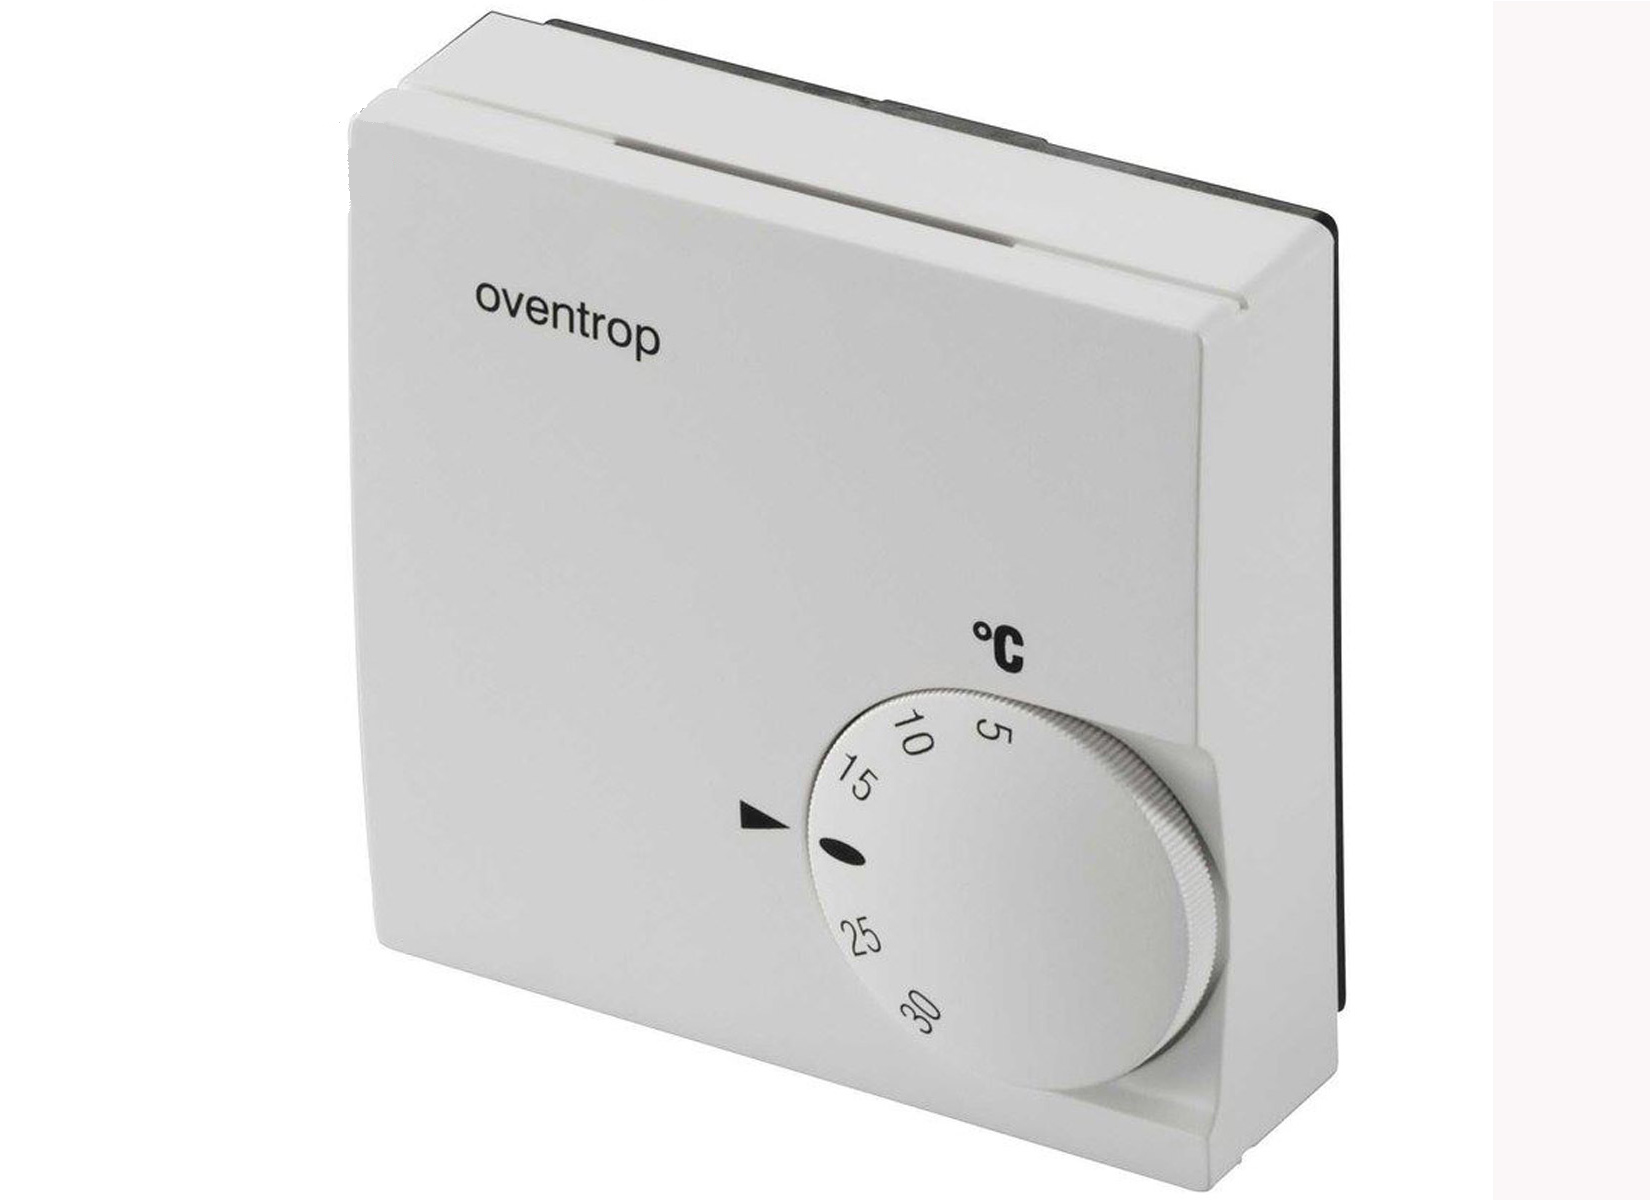 oventrop raumthermostat 230v fu bodenheizung aufputz thermostat bodenheizung ebay. Black Bedroom Furniture Sets. Home Design Ideas